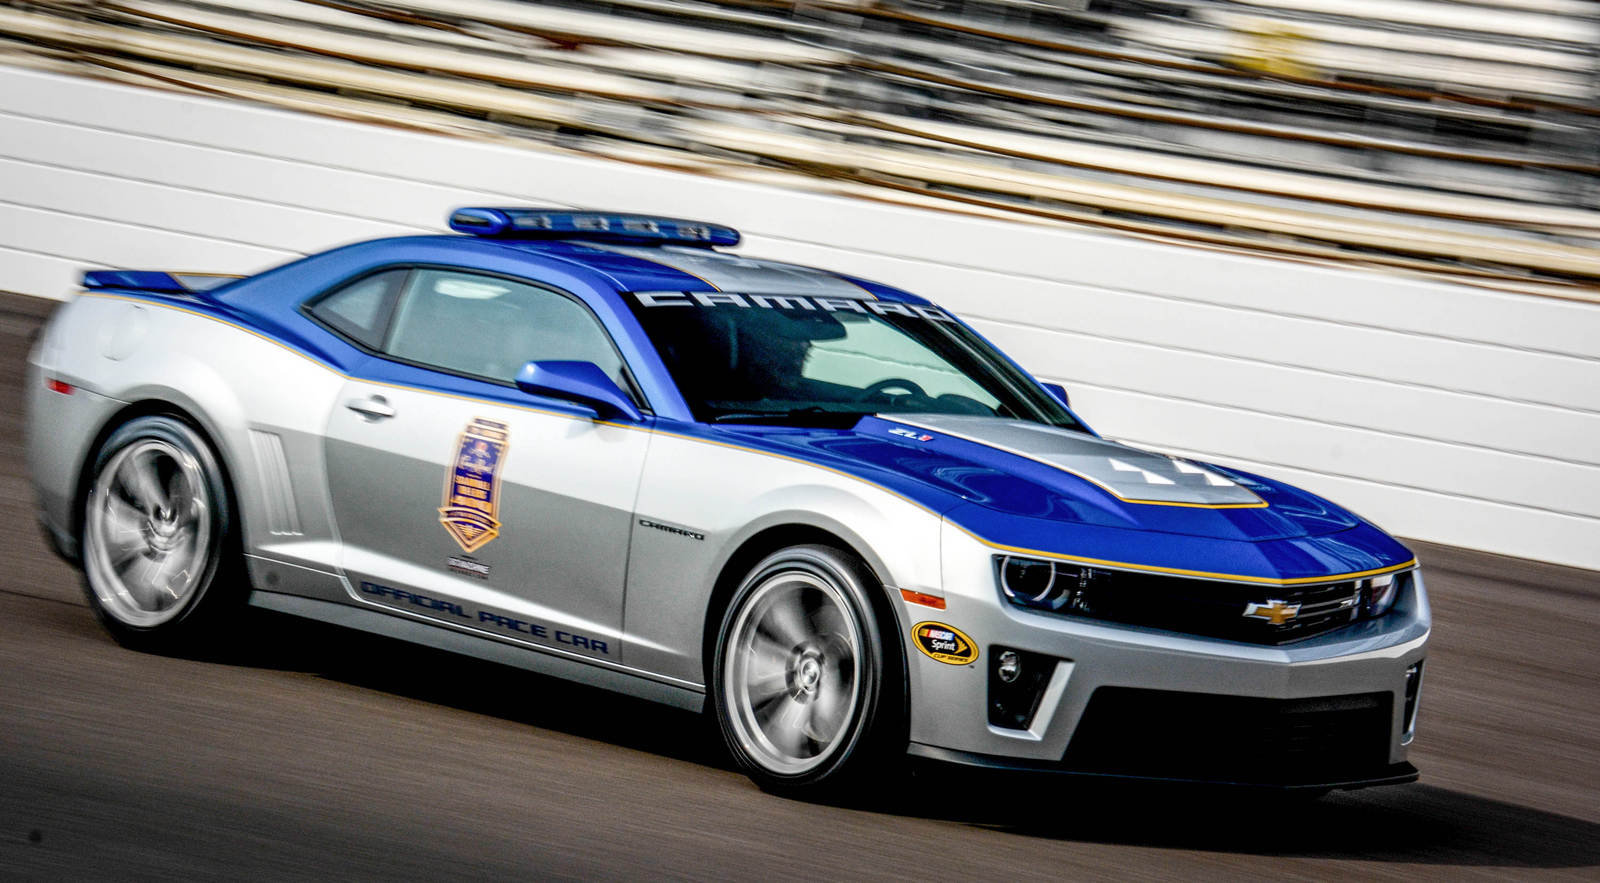 2013 Chevrolet Camaro Zl1 Pace Car Review Top Speed